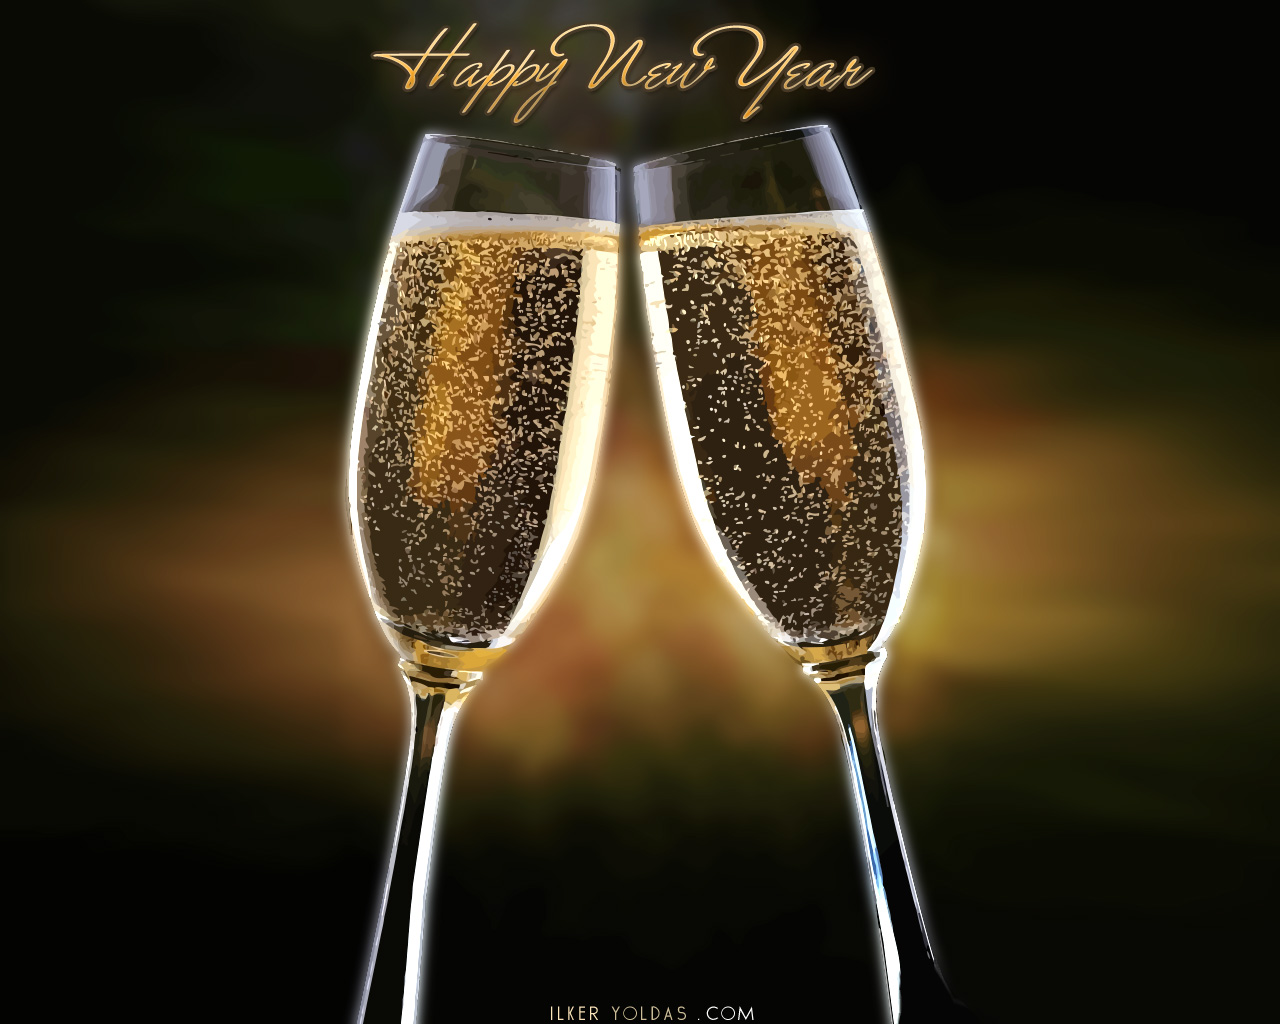 Happy New Year Cheers